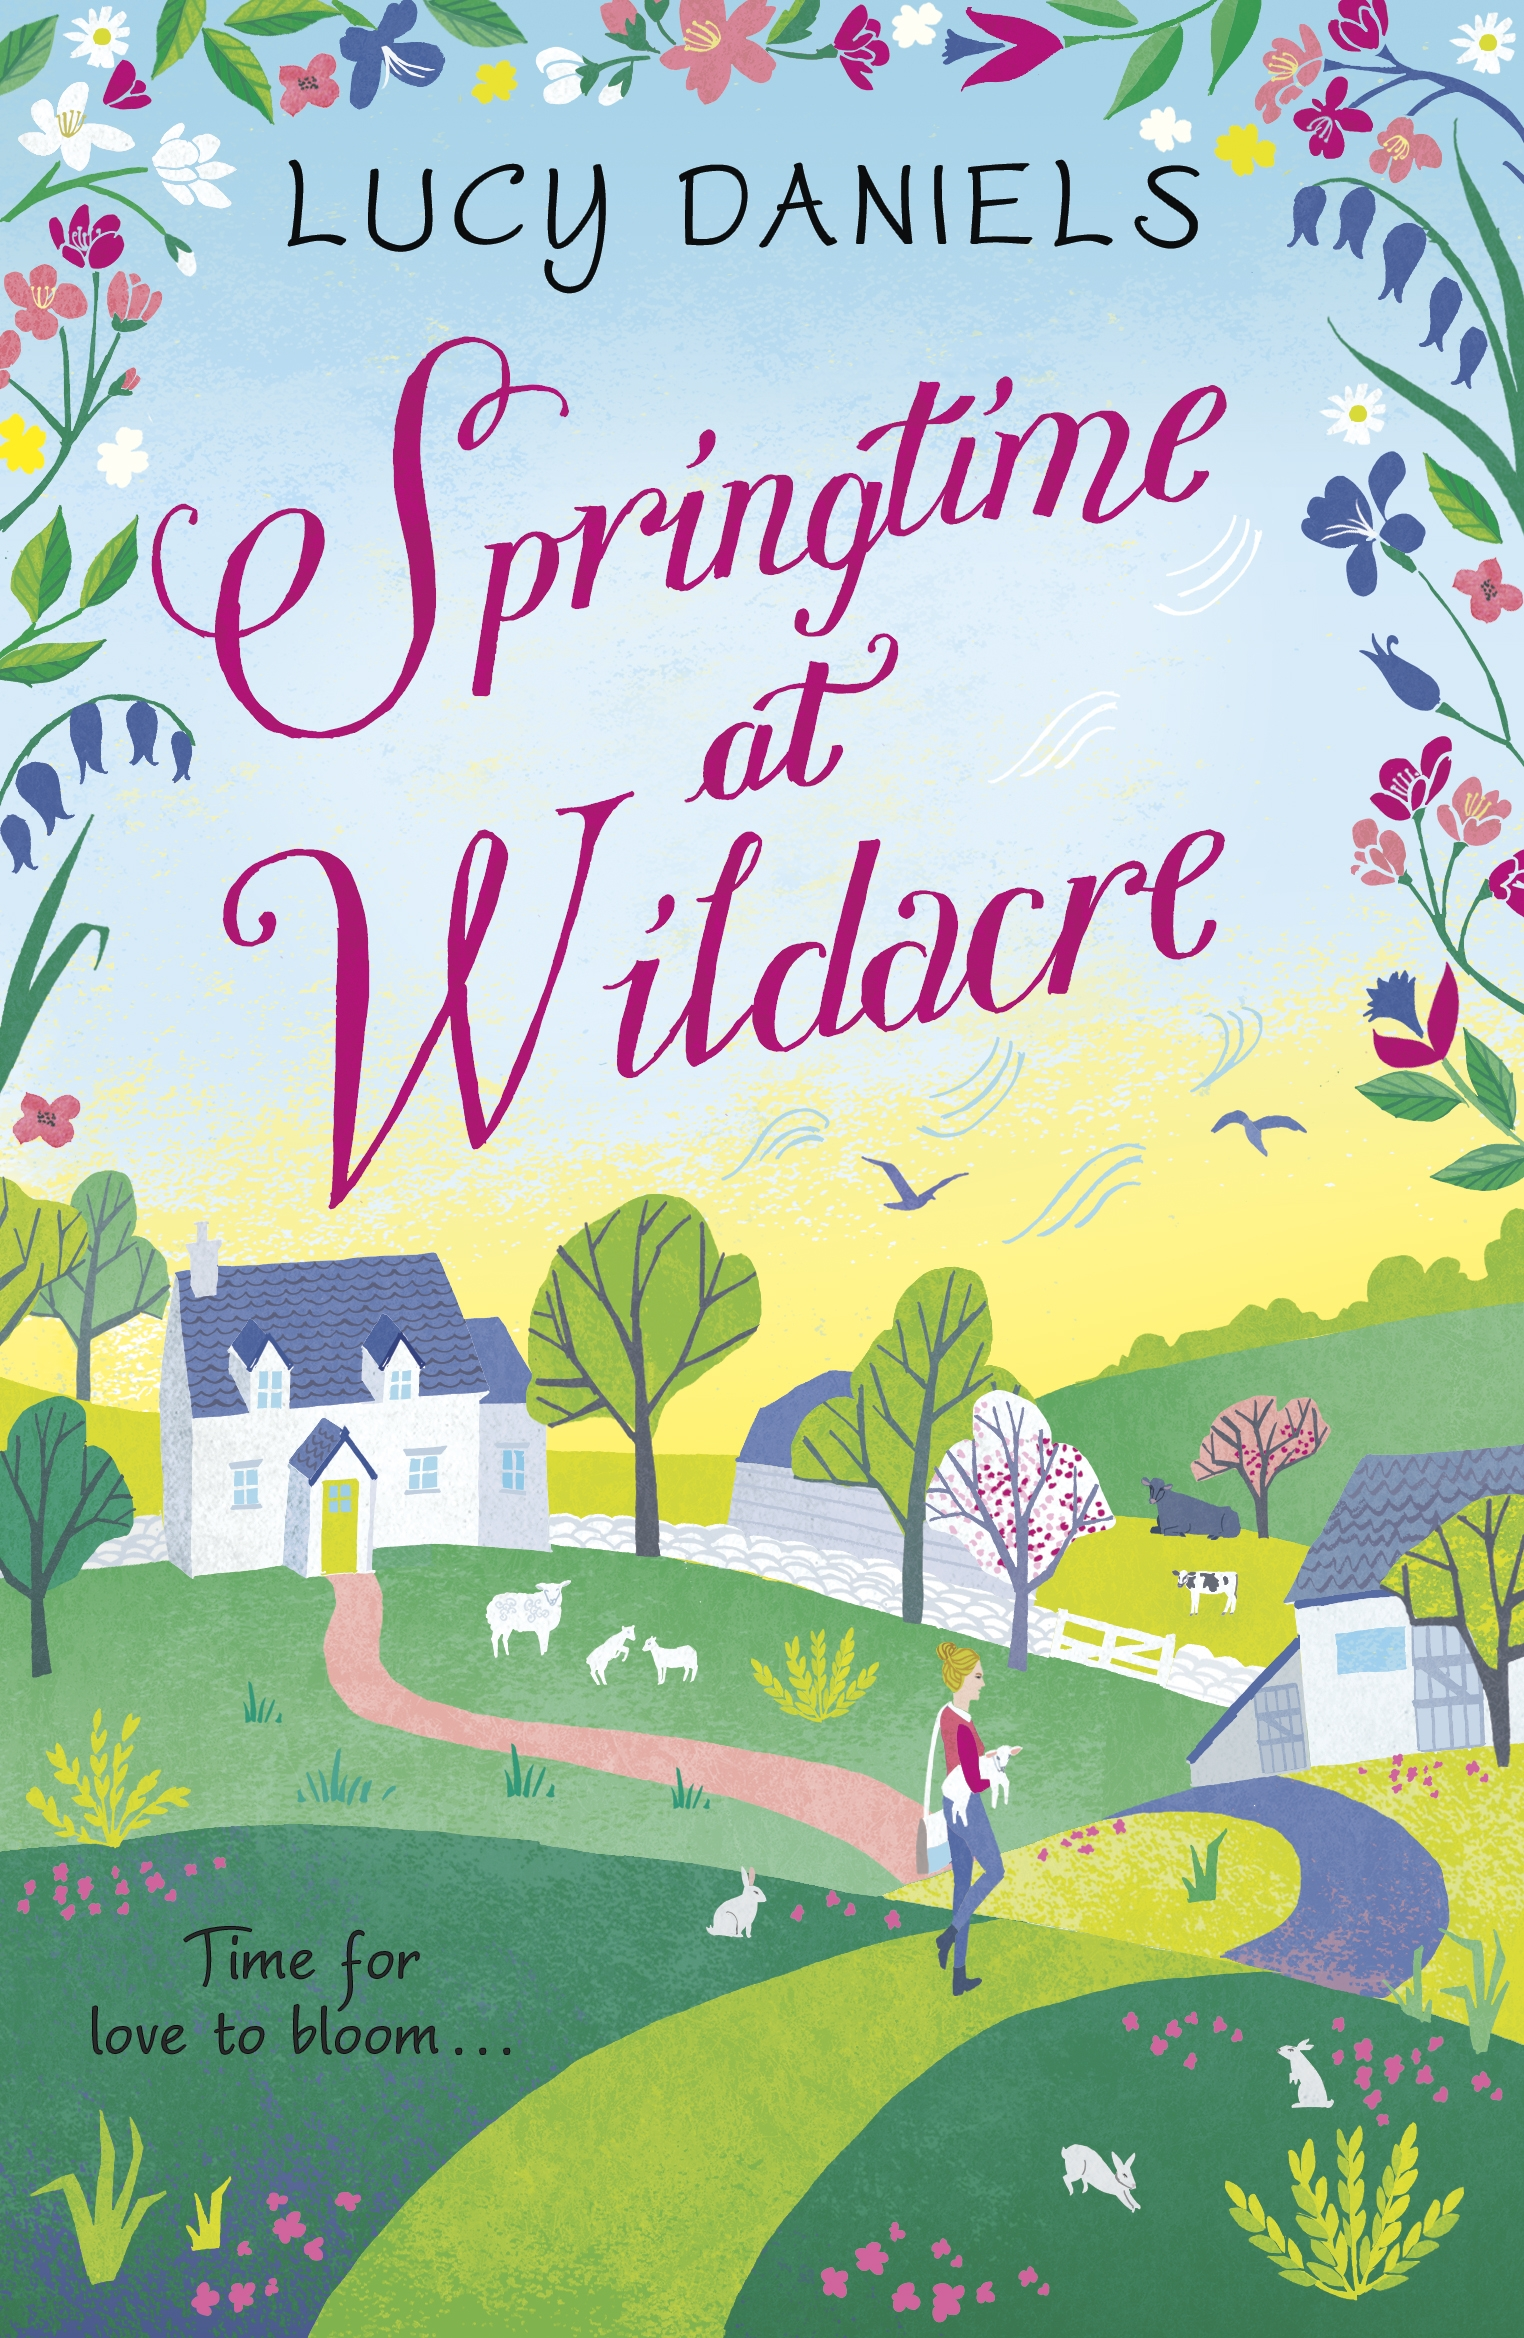 Springtime at Wildacre